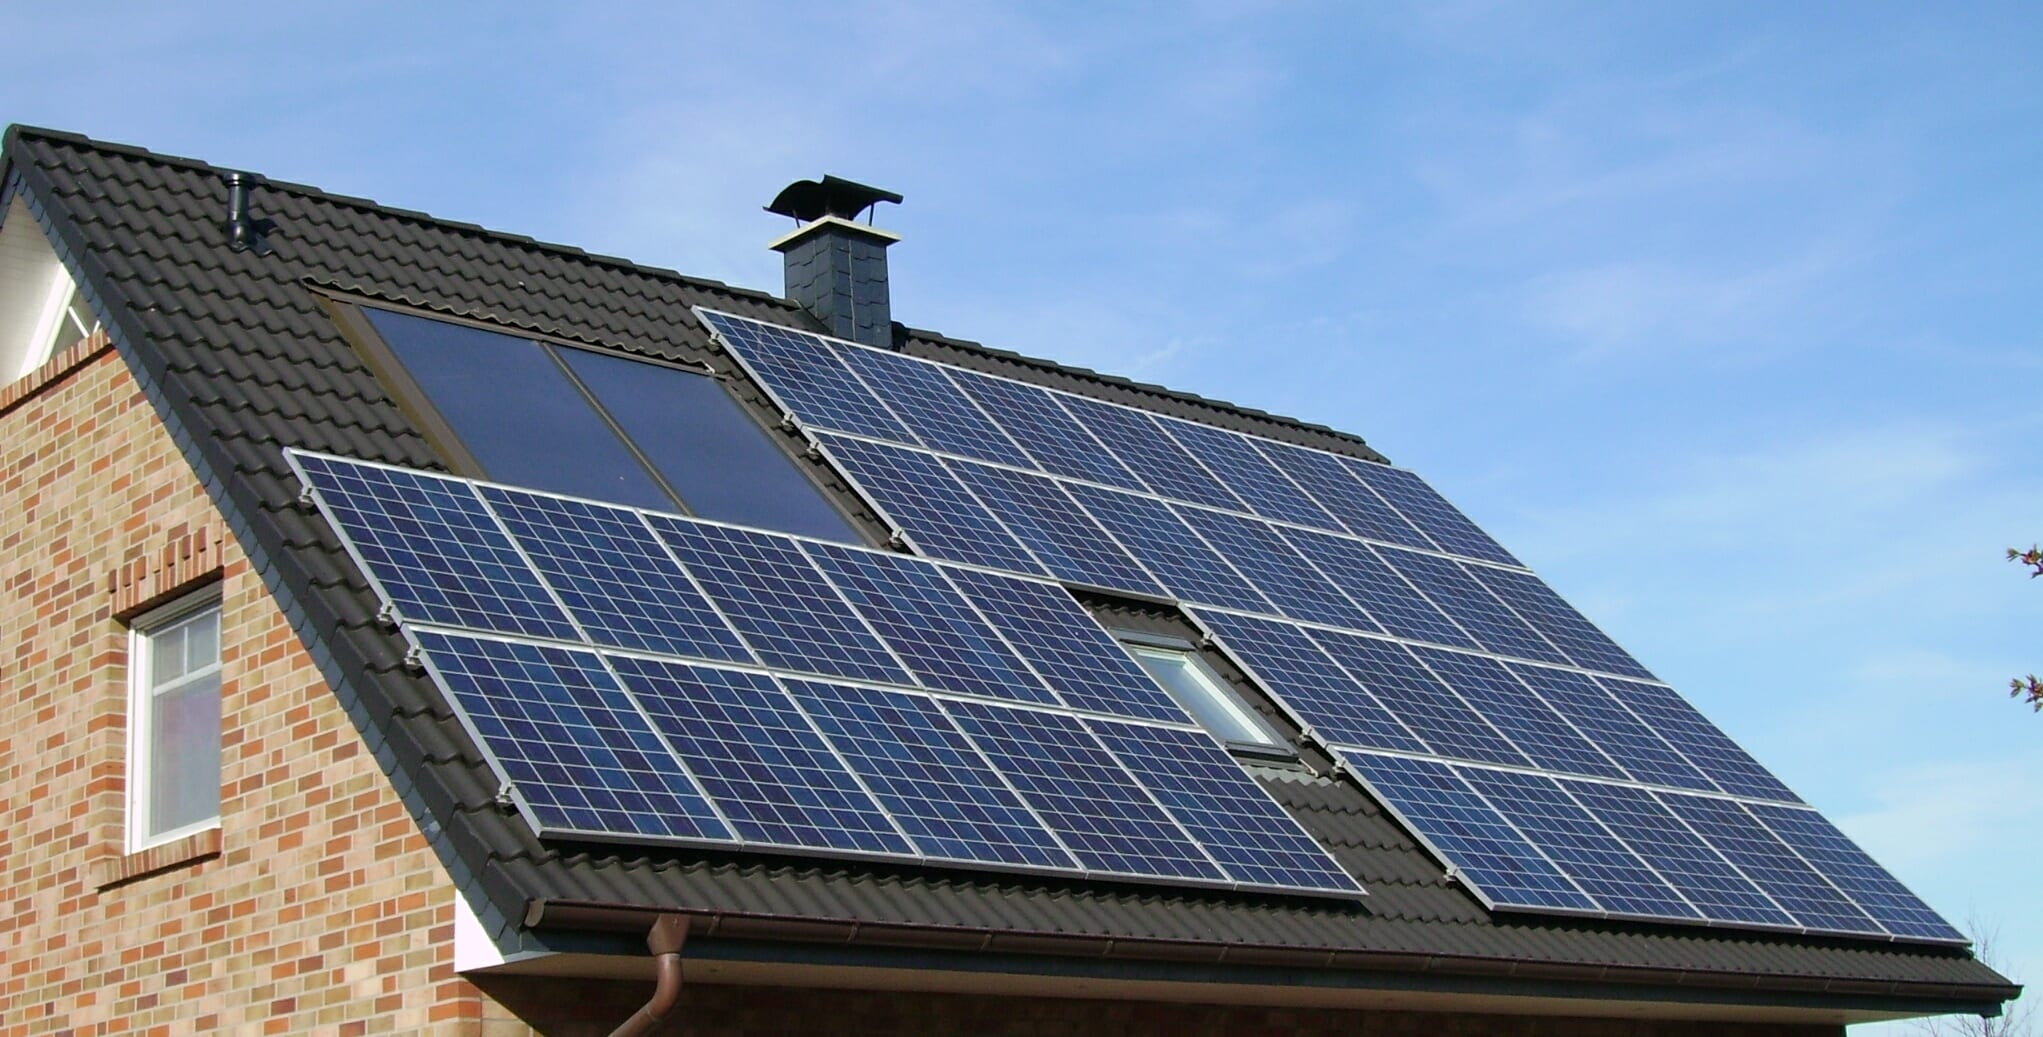 ... solar panels as an option to power your home of tomorrow. They